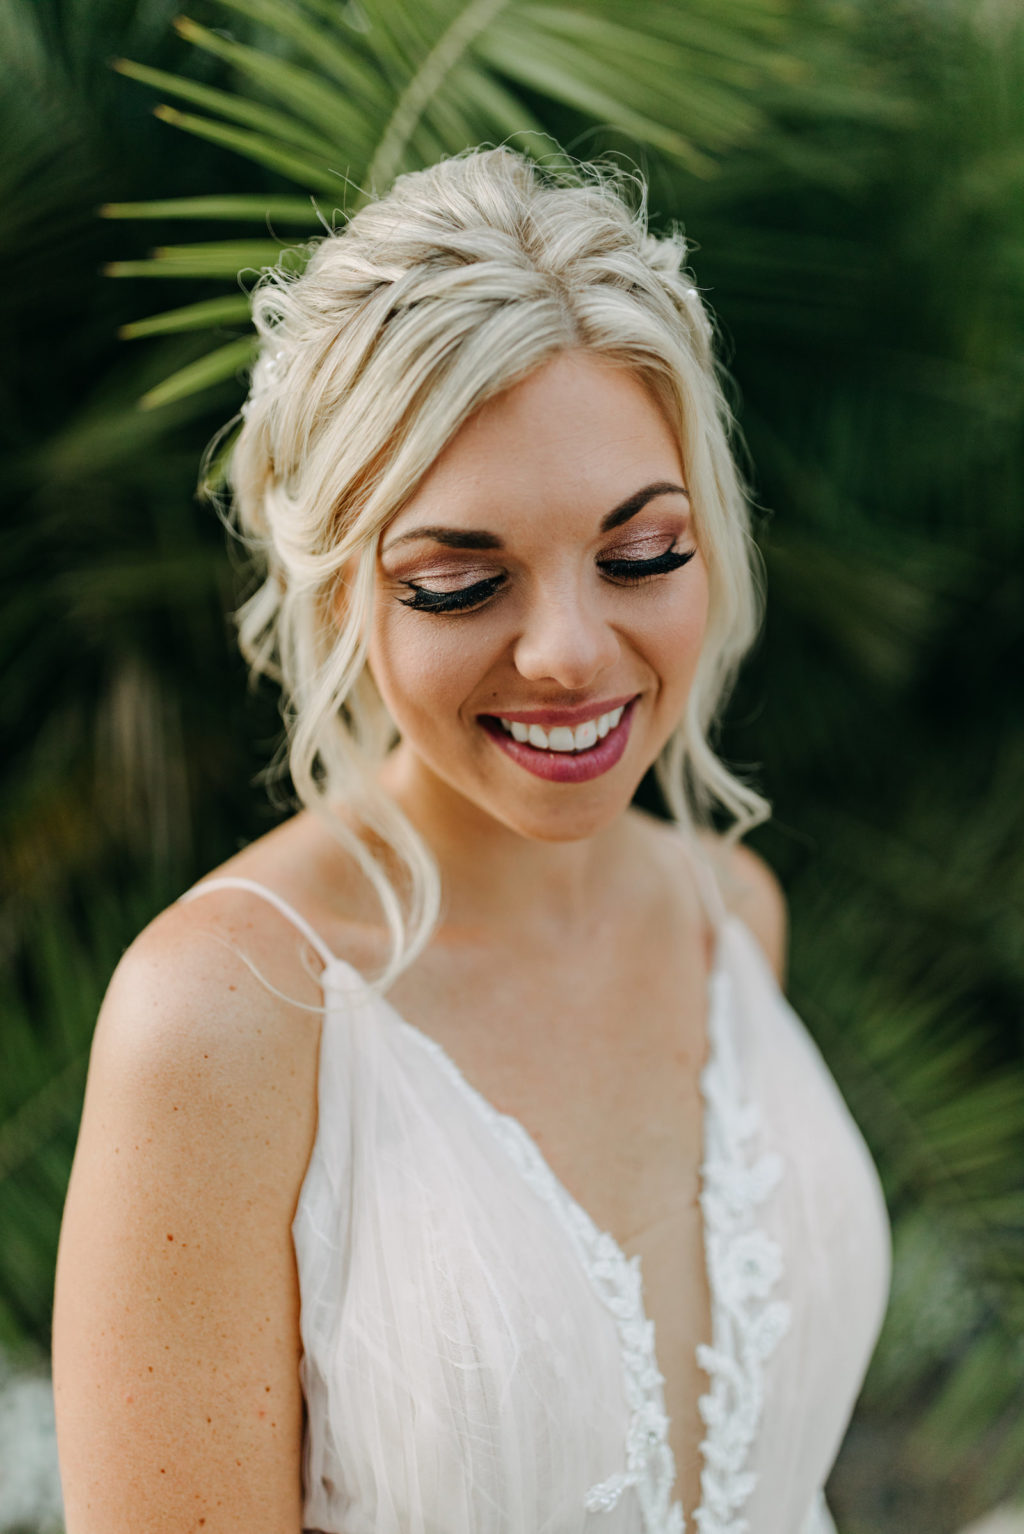 Tampa Bay Bride with Romantic Natural Makeup Look, Hair Updo with Loose Waves | Tampa Wedding Hair and Makeup Artist Femme Akoi Beauty Studio | Amber McWhorter Photography | Styled Shoot